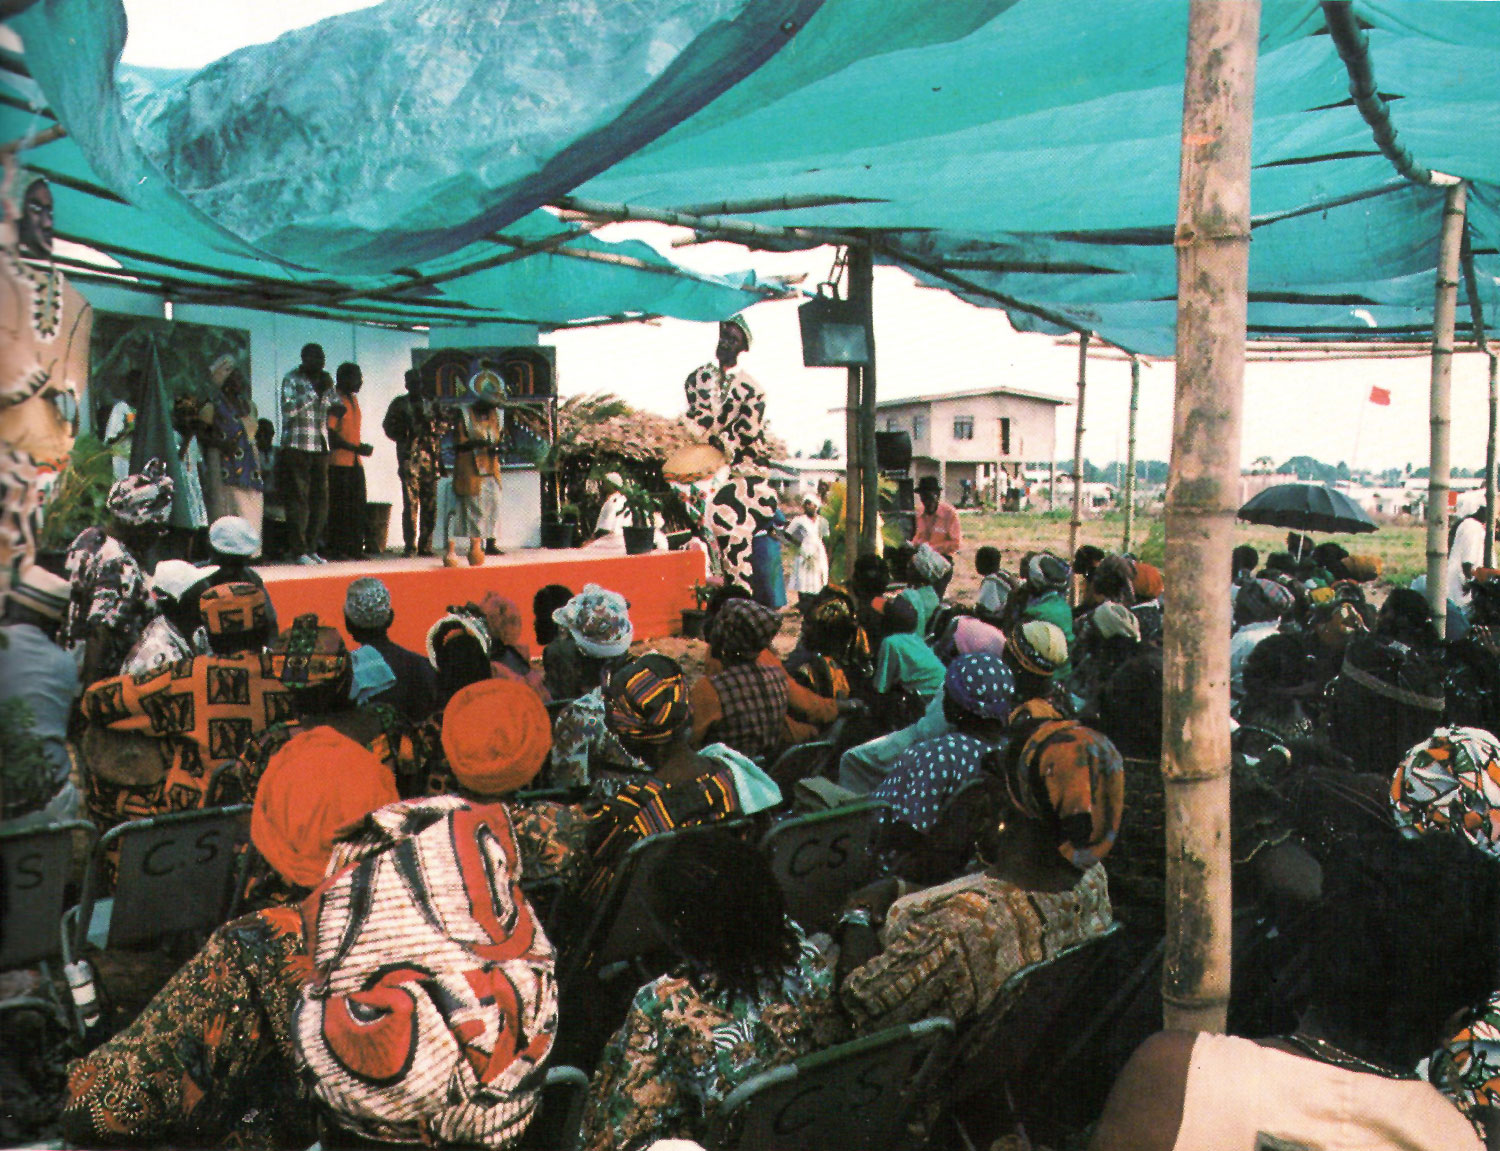 Festivities at an Orisha Family Day at Lopinot in eastern Trinidad. Photograph by Horace Ové